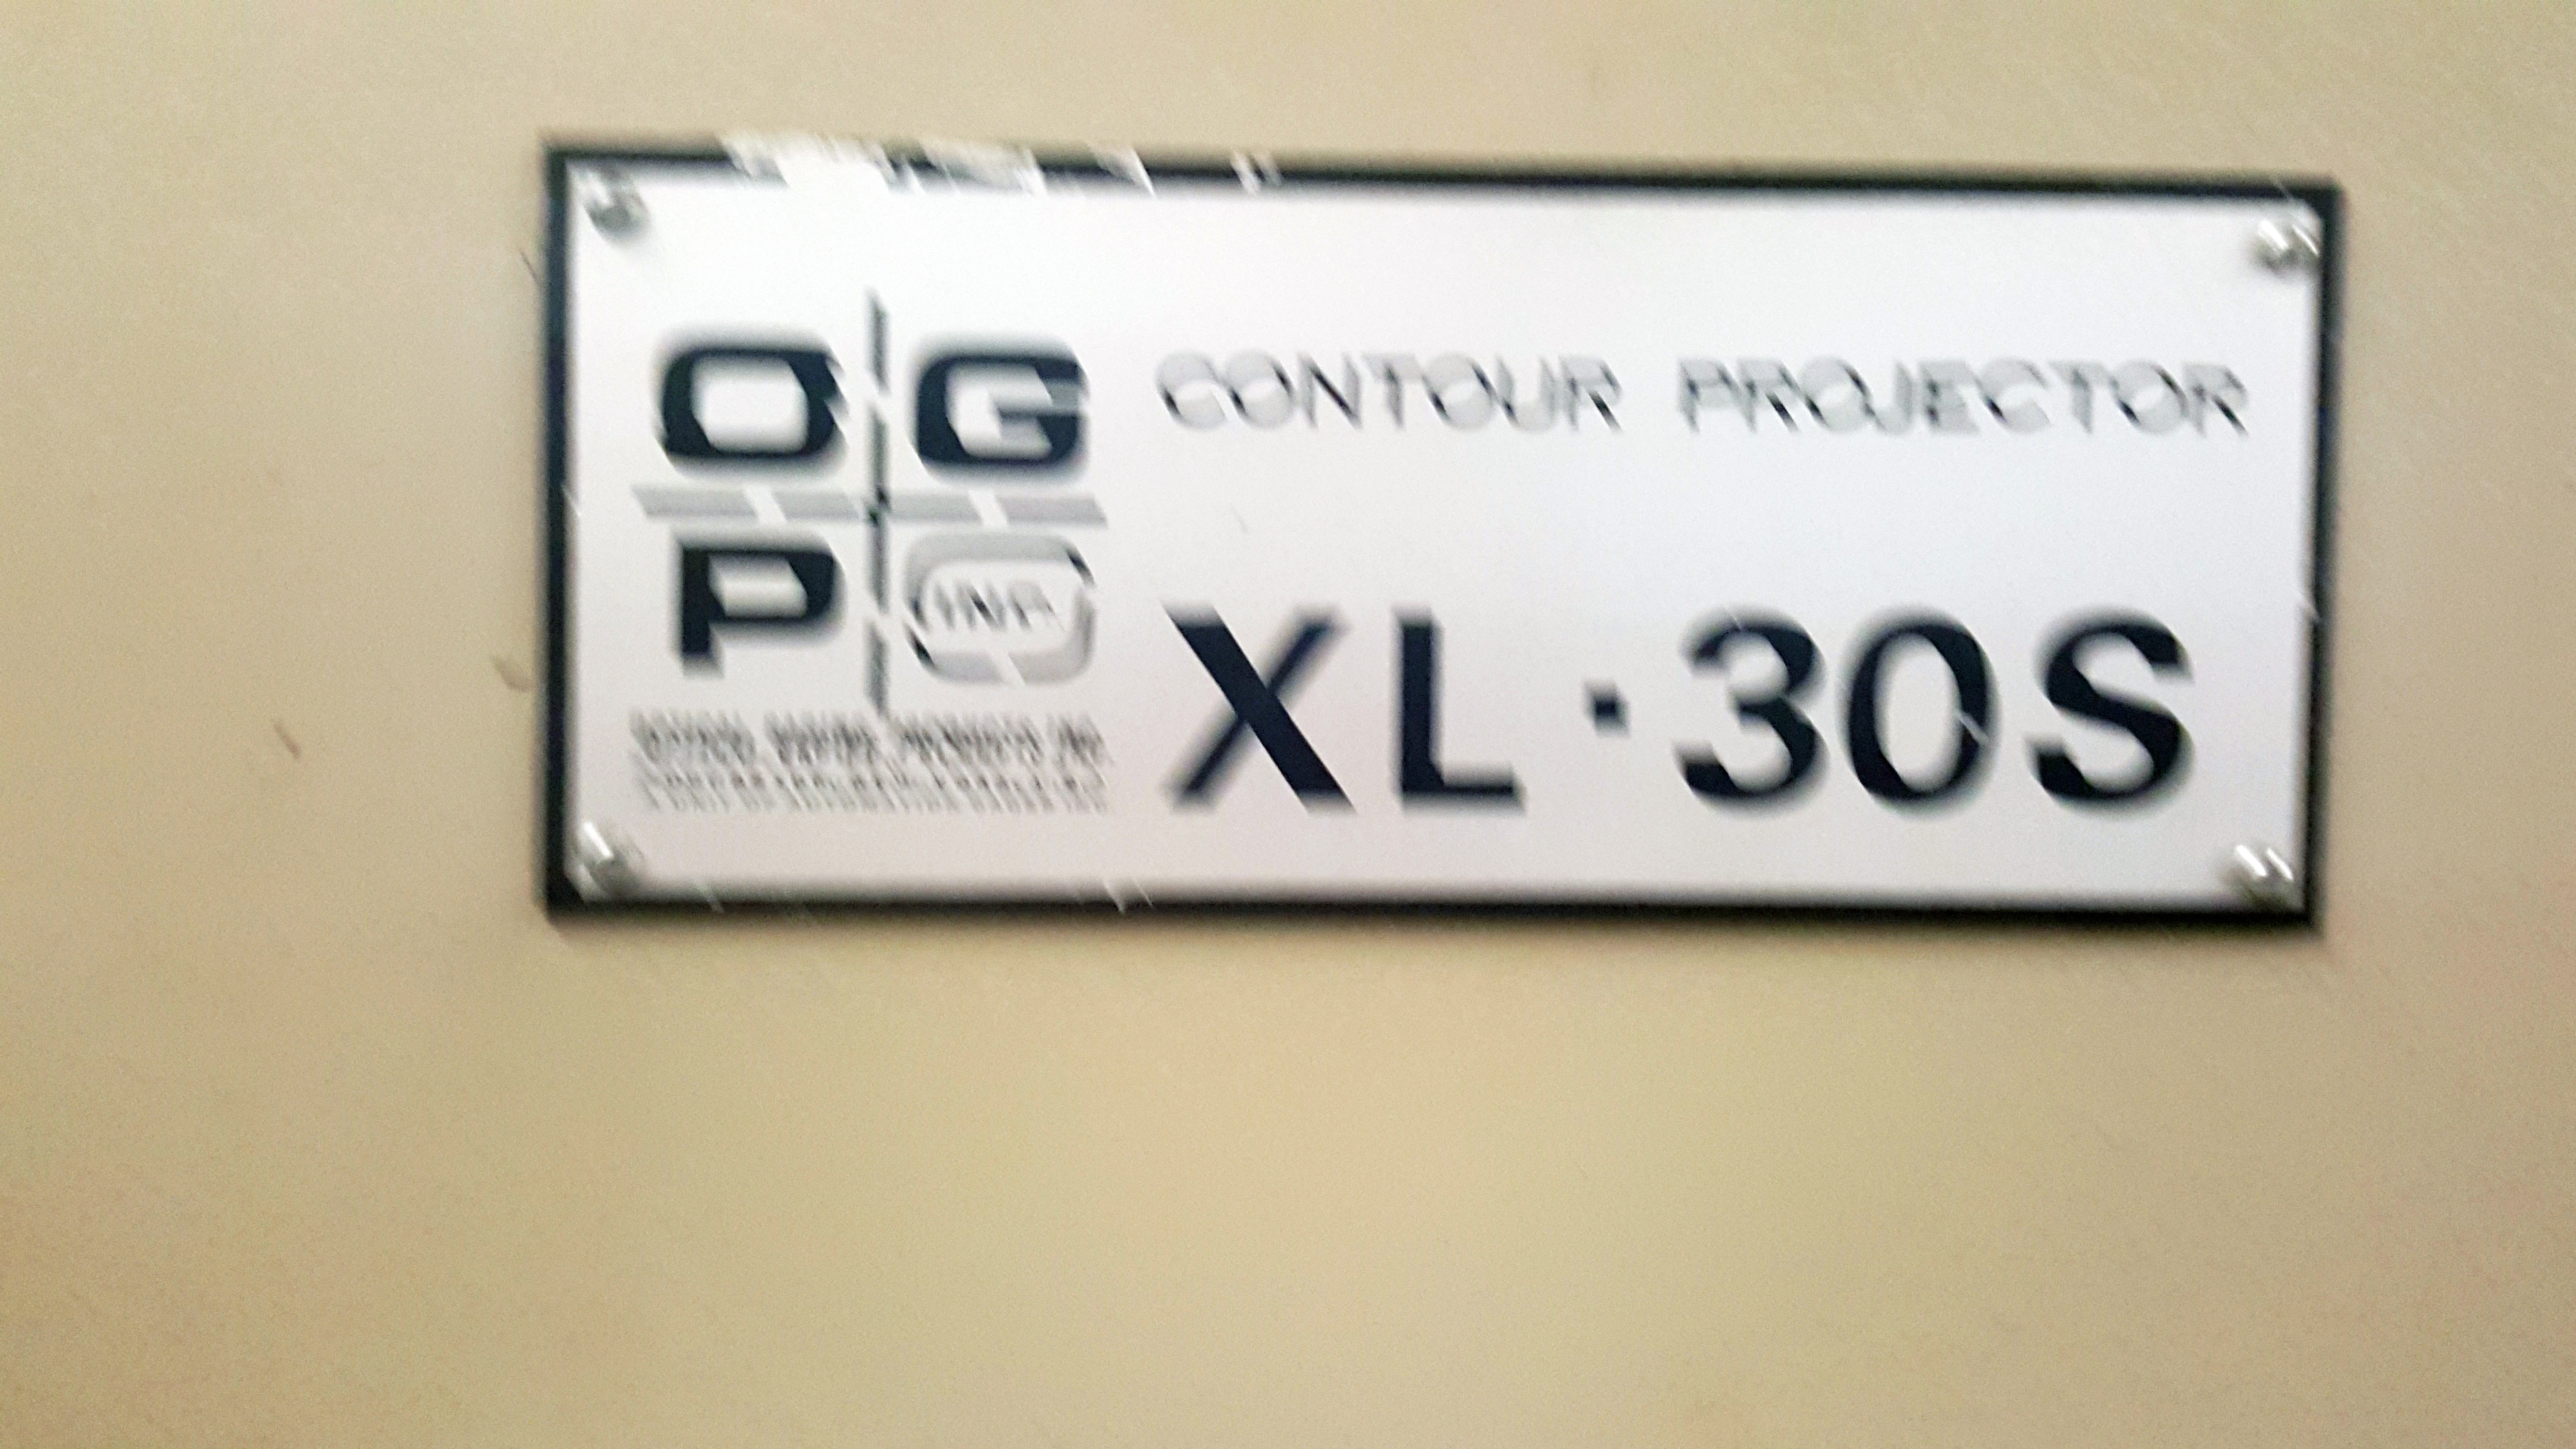 """OGP 30"""" Optical Comparator Projector, Model IXL-827, XL30S, S/N 8270292, under power - Image 6 of 8"""